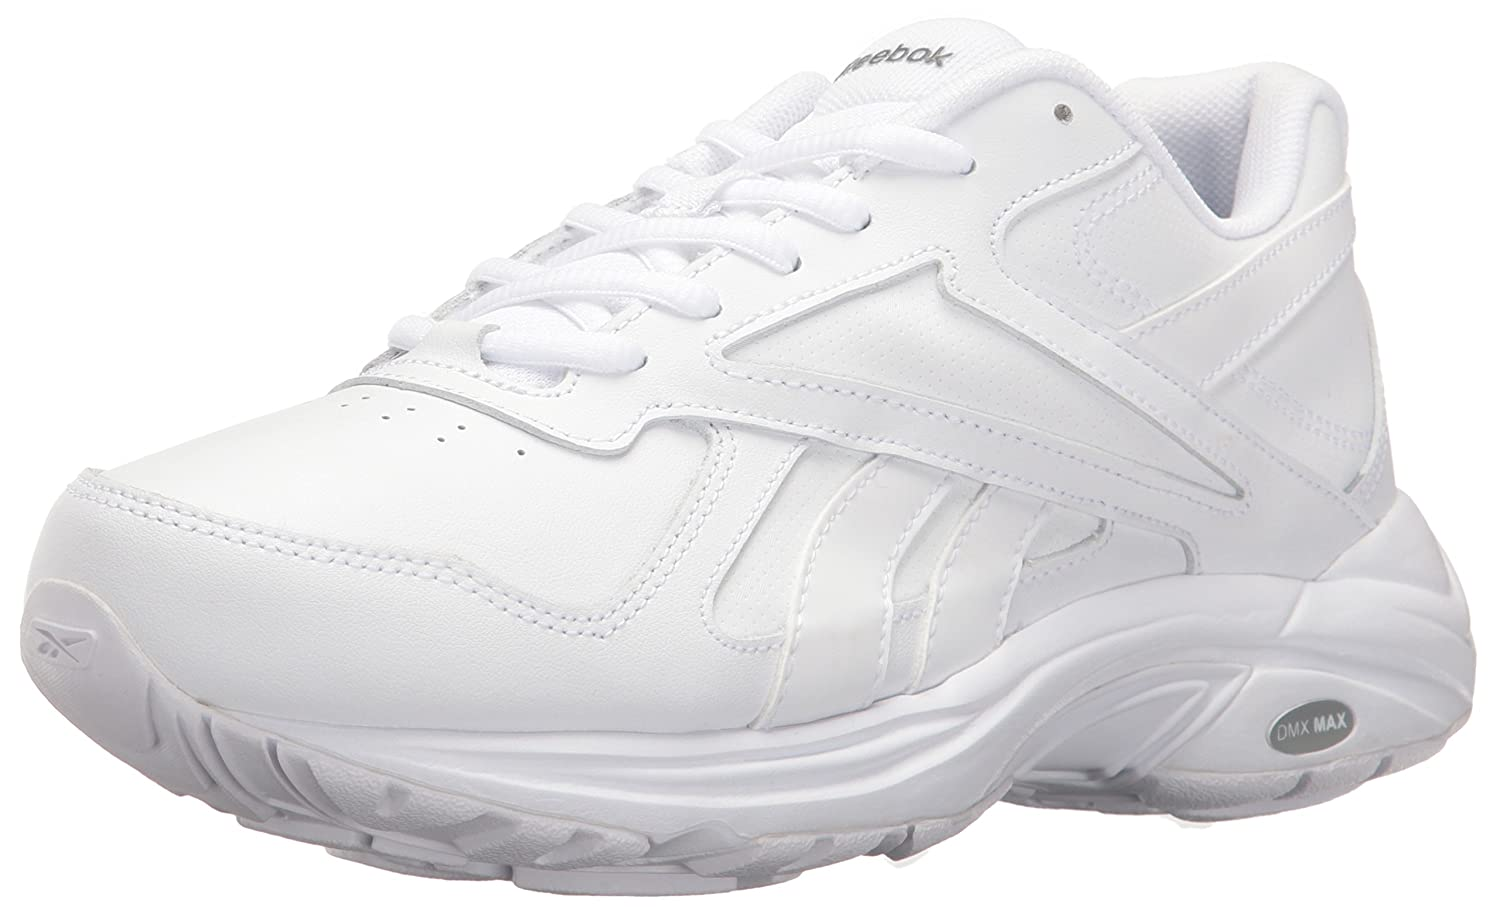 Reebok Women's Ultra V DMX Max WD D Walking Shoe B01NCA5VGP 5.5 C/D US|White/Flat Grey - Wide D